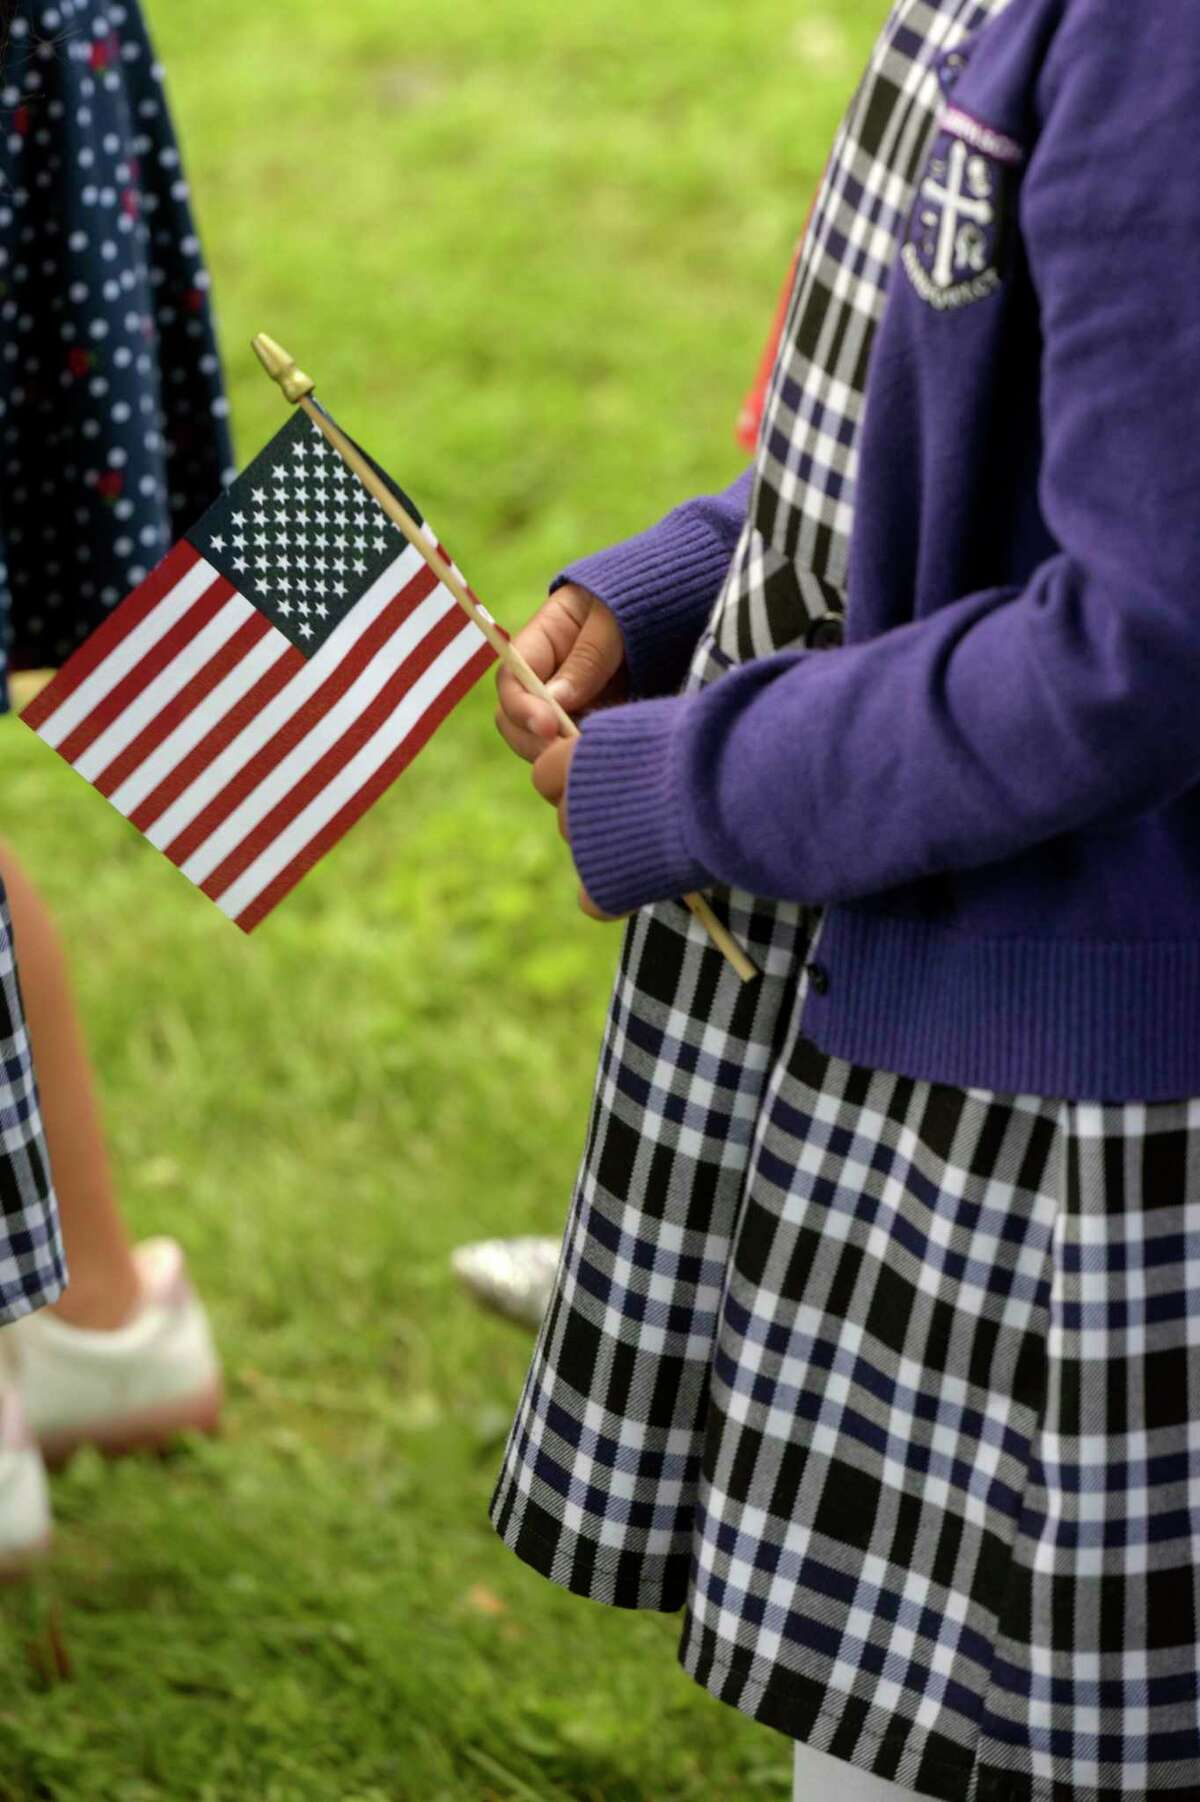 A student holds a flag during a September 11th 20th Anniversary Ceremony at St. Joseph School, Friday Morning. September 10, 2021, Danbury, Conn.